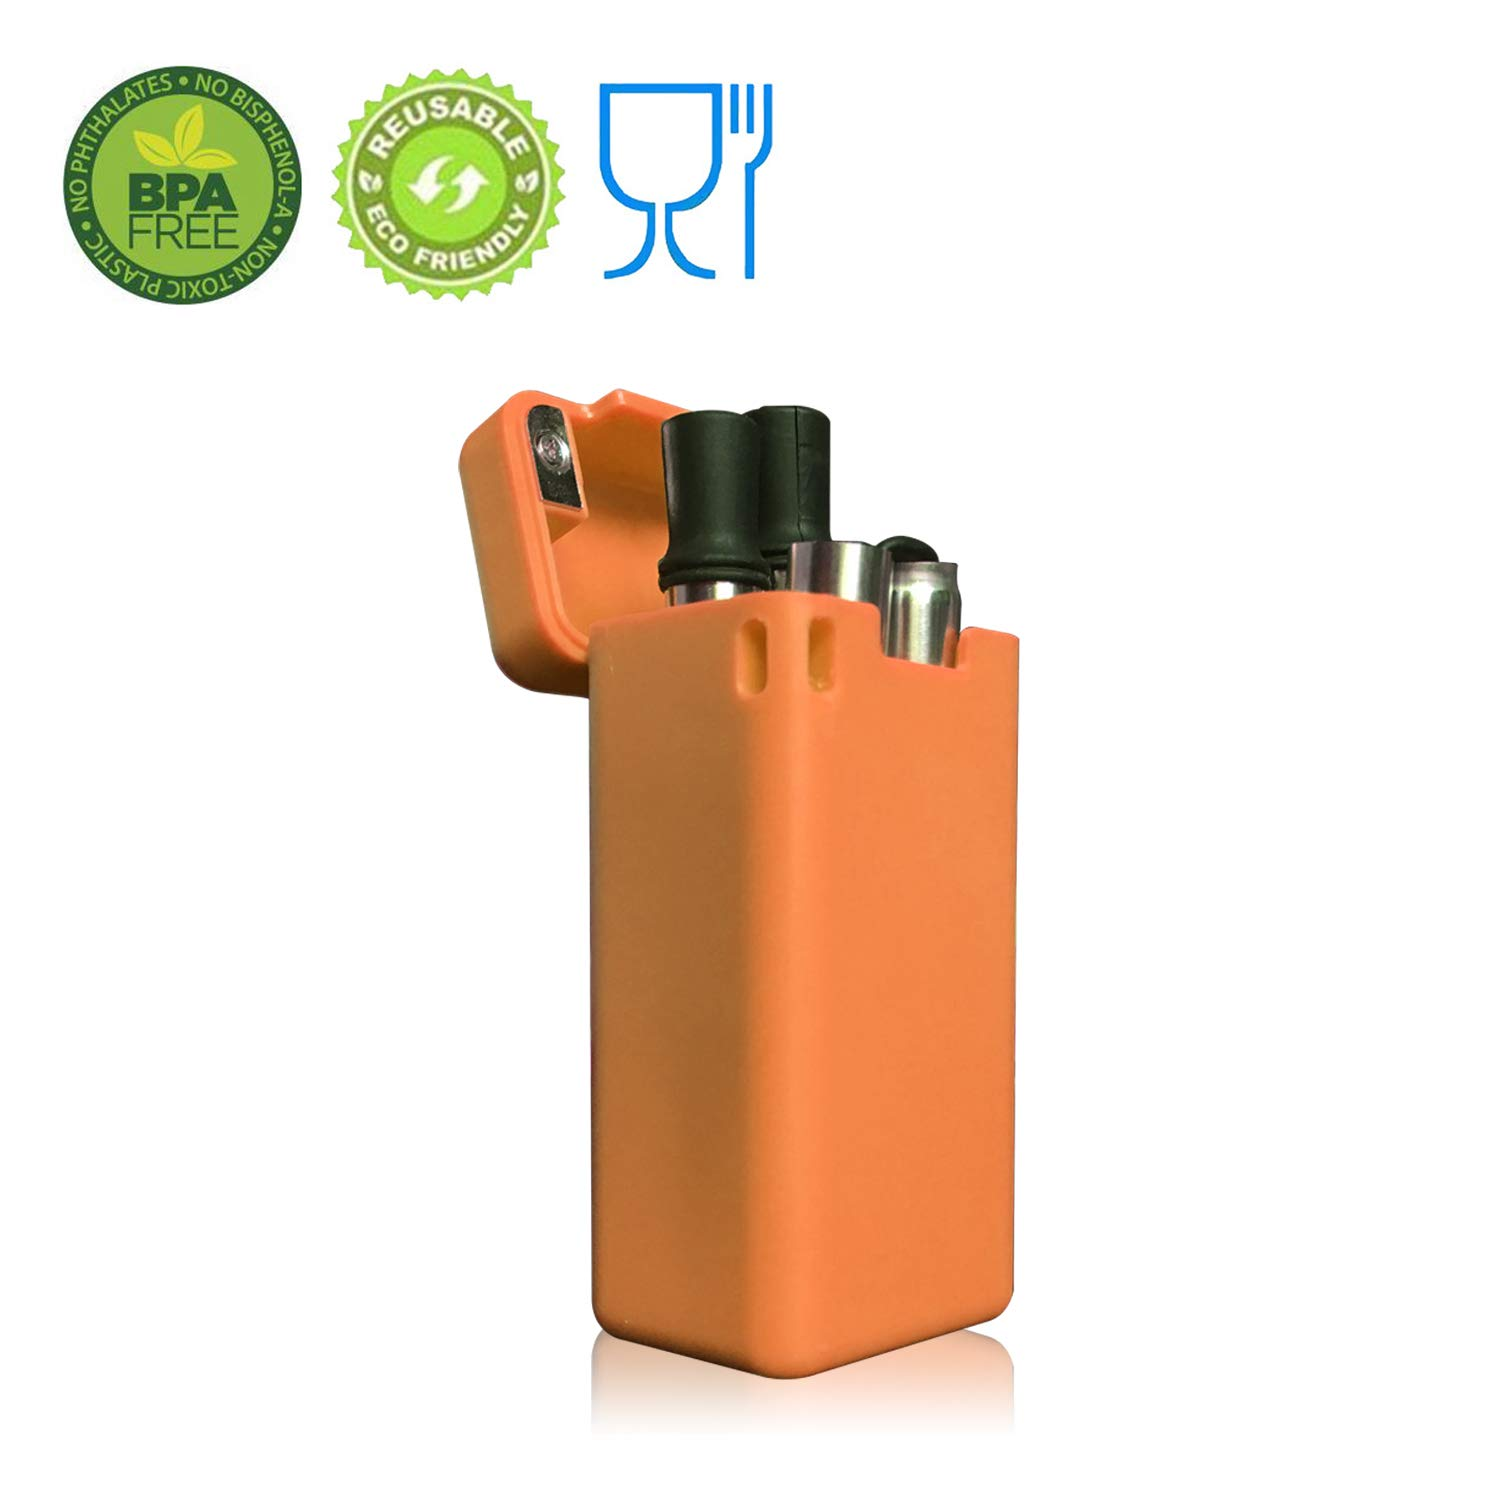 Collapsible Reusable Stainless Straw Comparable with Final Straw Medical-Grade Food-Grade Raw Material Portable Folding Drinking Straw with Hard Case Cleaning Brush (Orange)